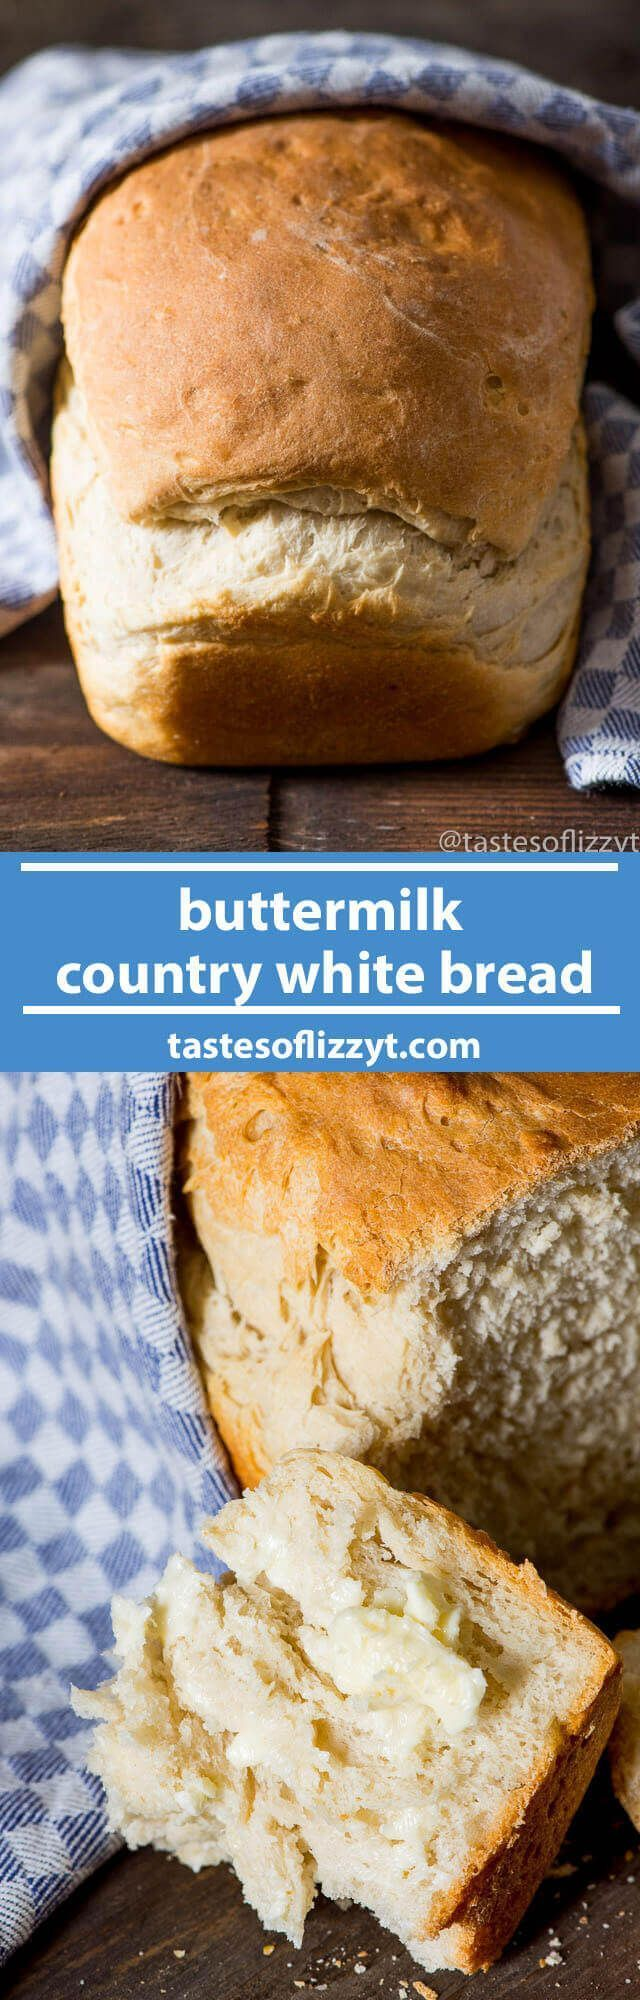 My Grandma S Recipe For A Simple Buttermilk Country White Bread This Is A Thick Rustic Bread Bread Maker Recipes Bread Recipes Homemade Bread Machine Recipes